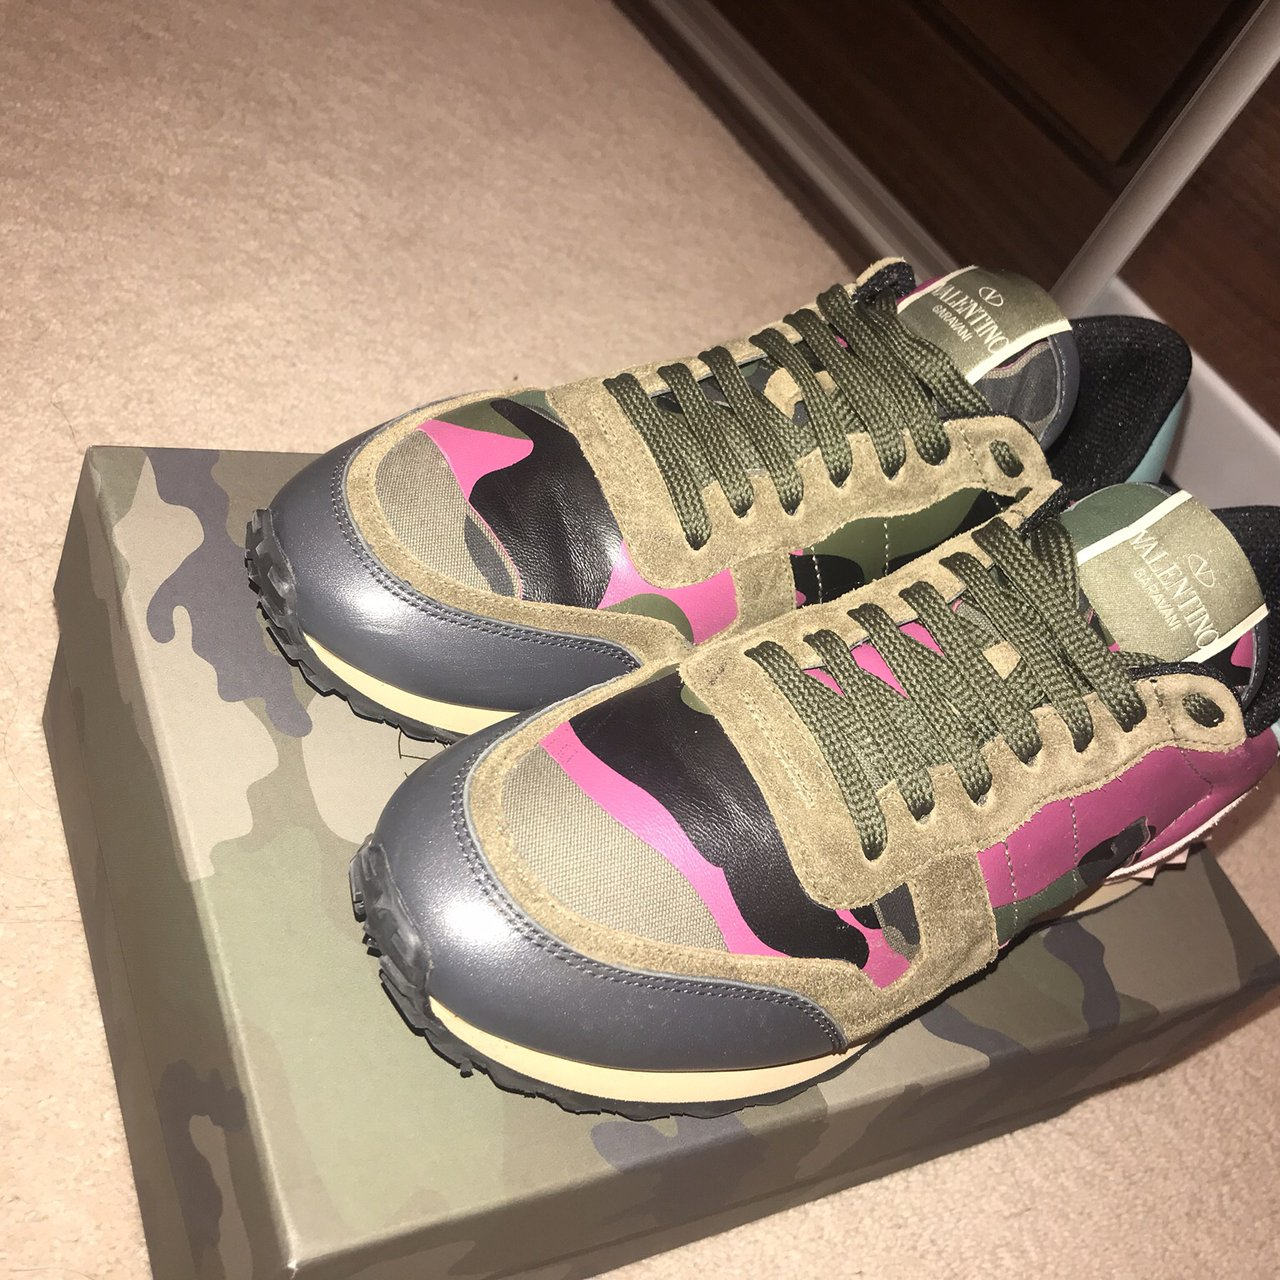 MESSAGE ME OFFERS Genuine Valentino trainers size 5. £500. - Depop 6ecabe3cc2aa